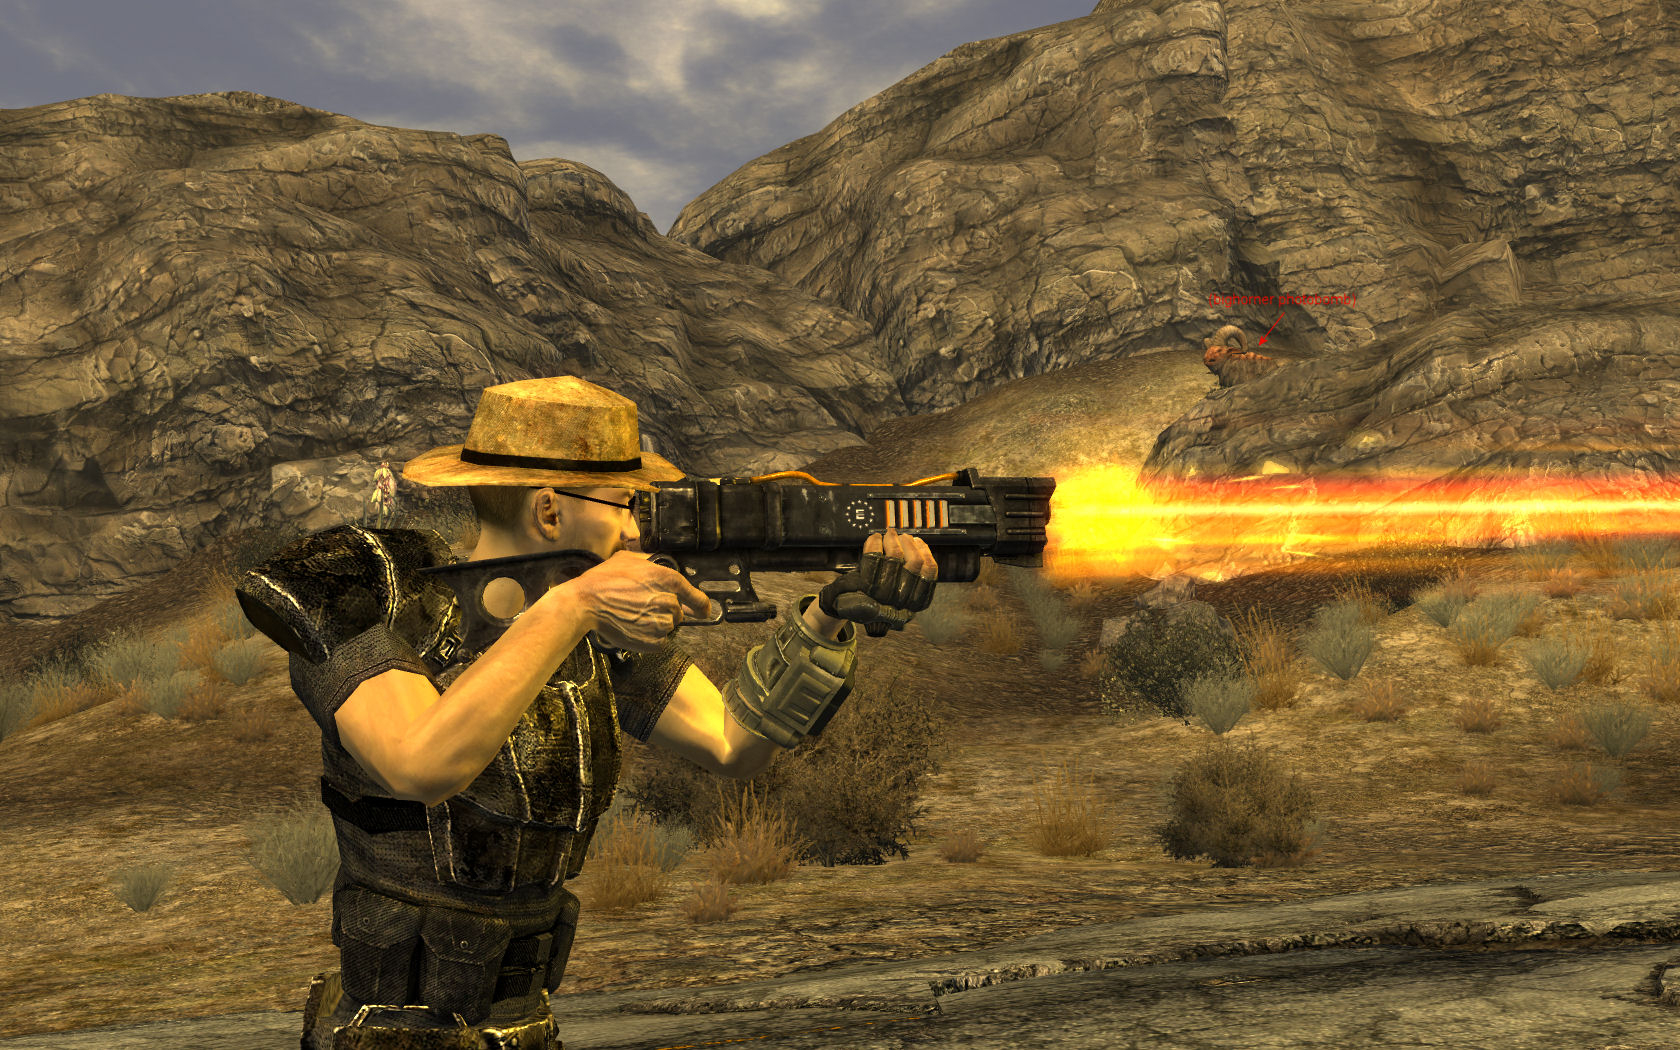 Image 2 - New Vegas Weapons (Fallout 4 Edition) mod for